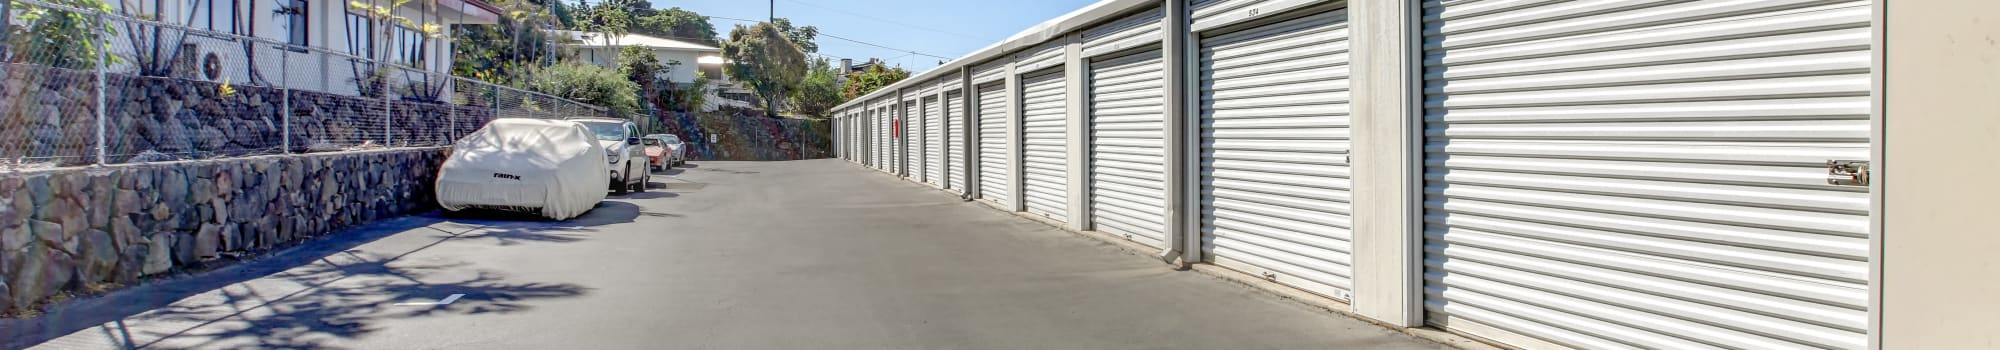 My Self Storage Space storage solutions in Kealakekua, Hawaii